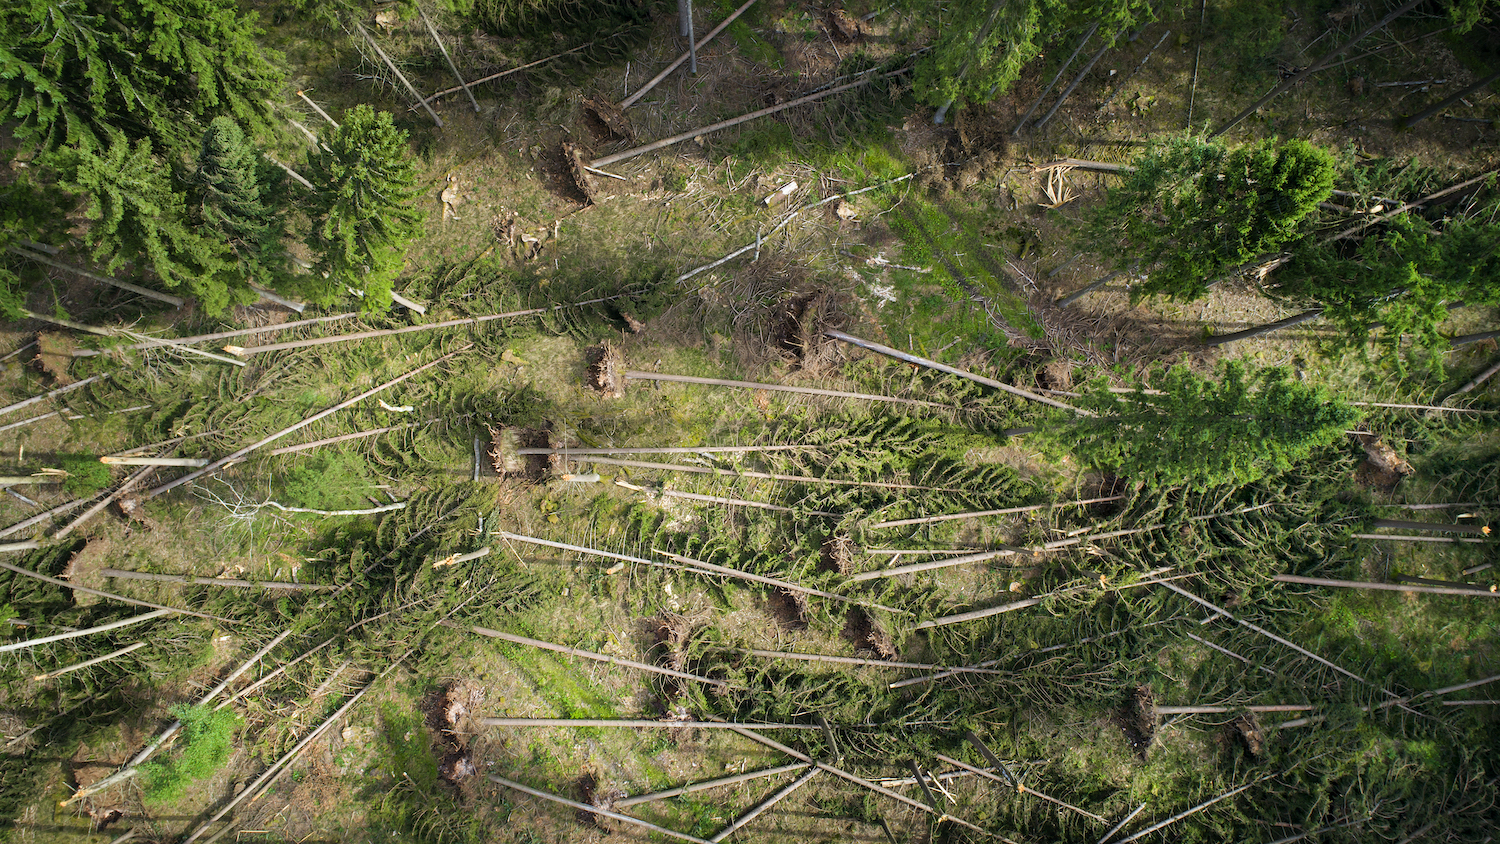 Trees after a Hurricane - Hydrology and Watershed Management Forestry and Environmental Resources at NCState University